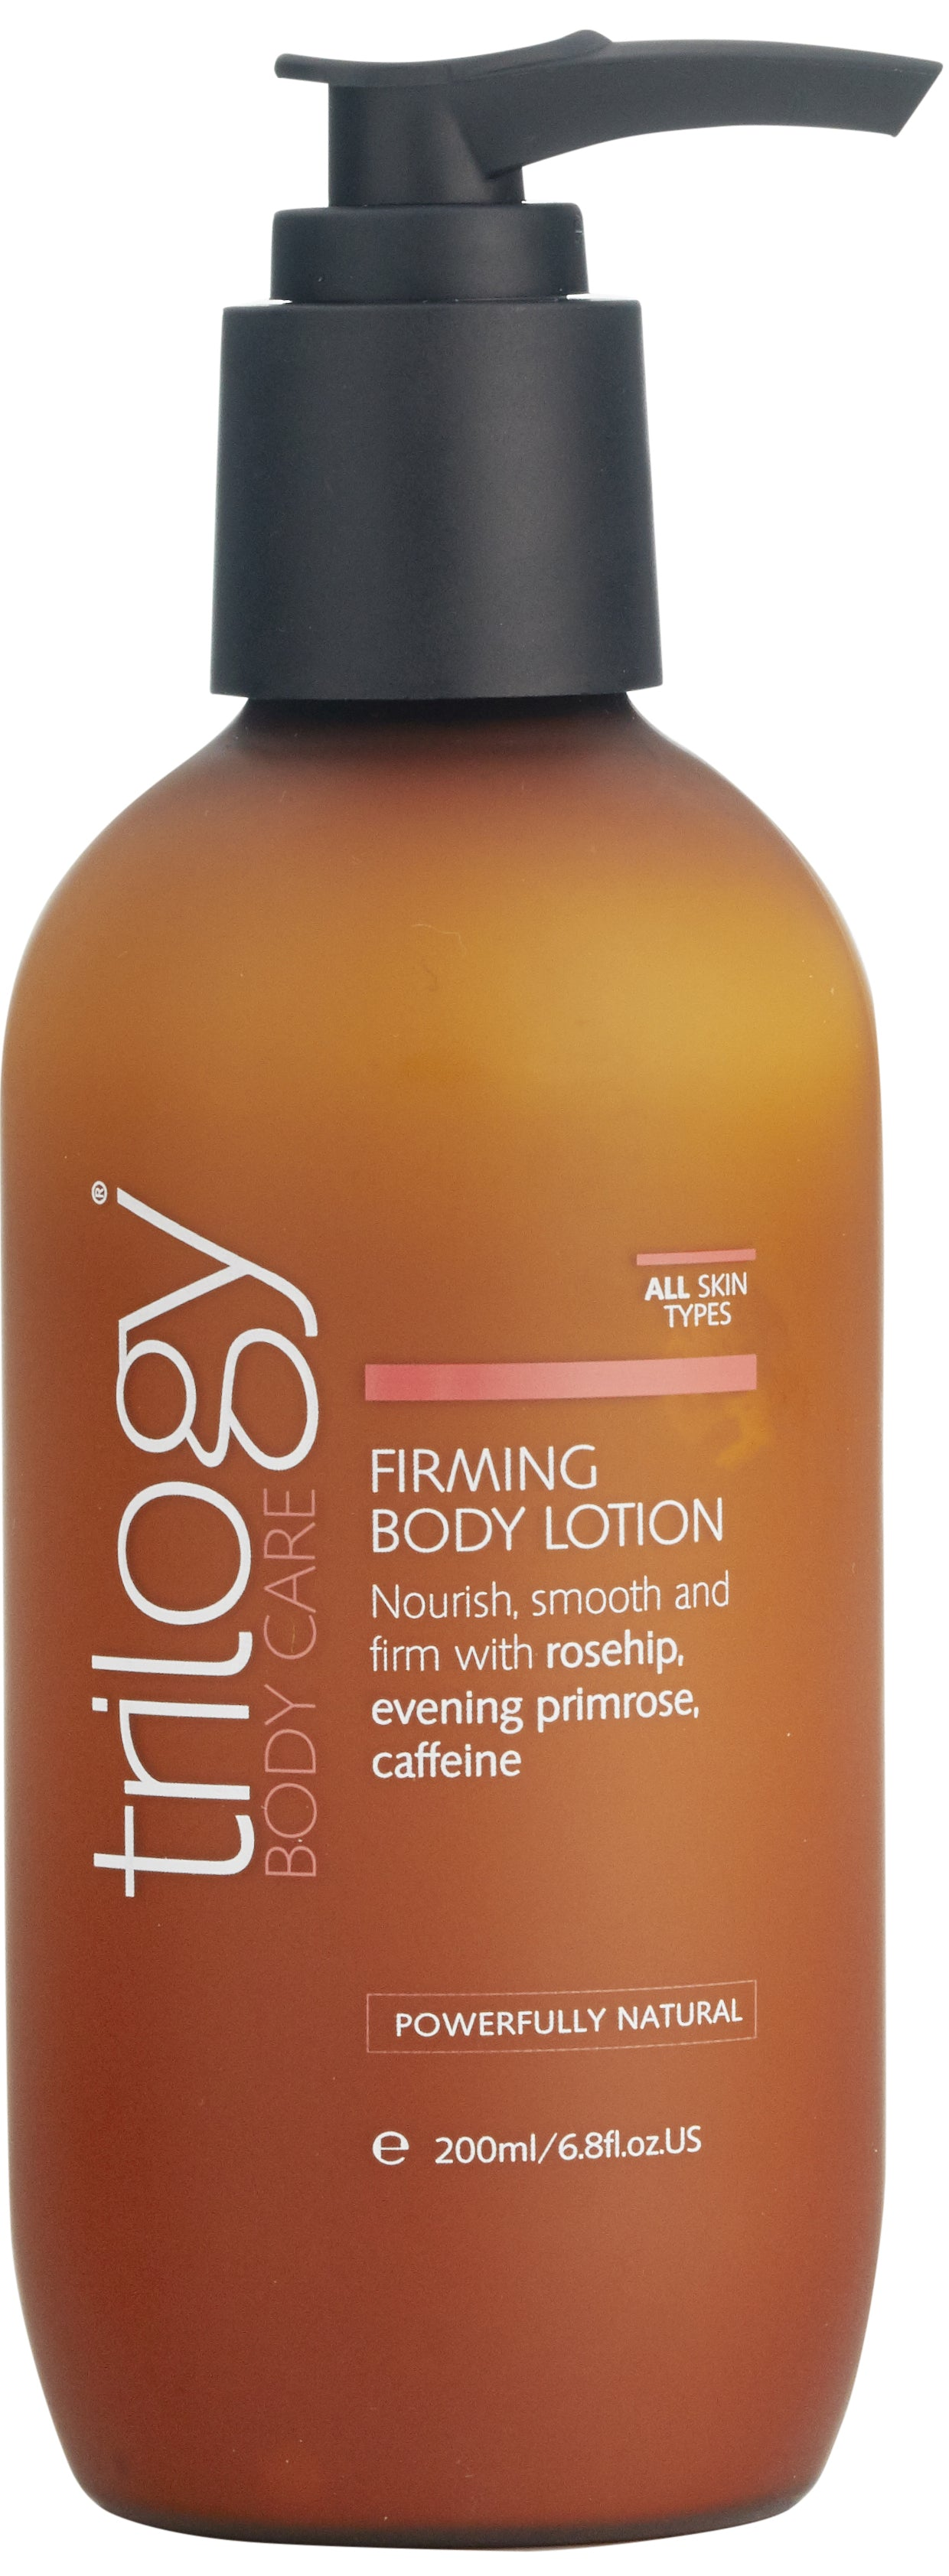 Trilogy Firming Body Lotion